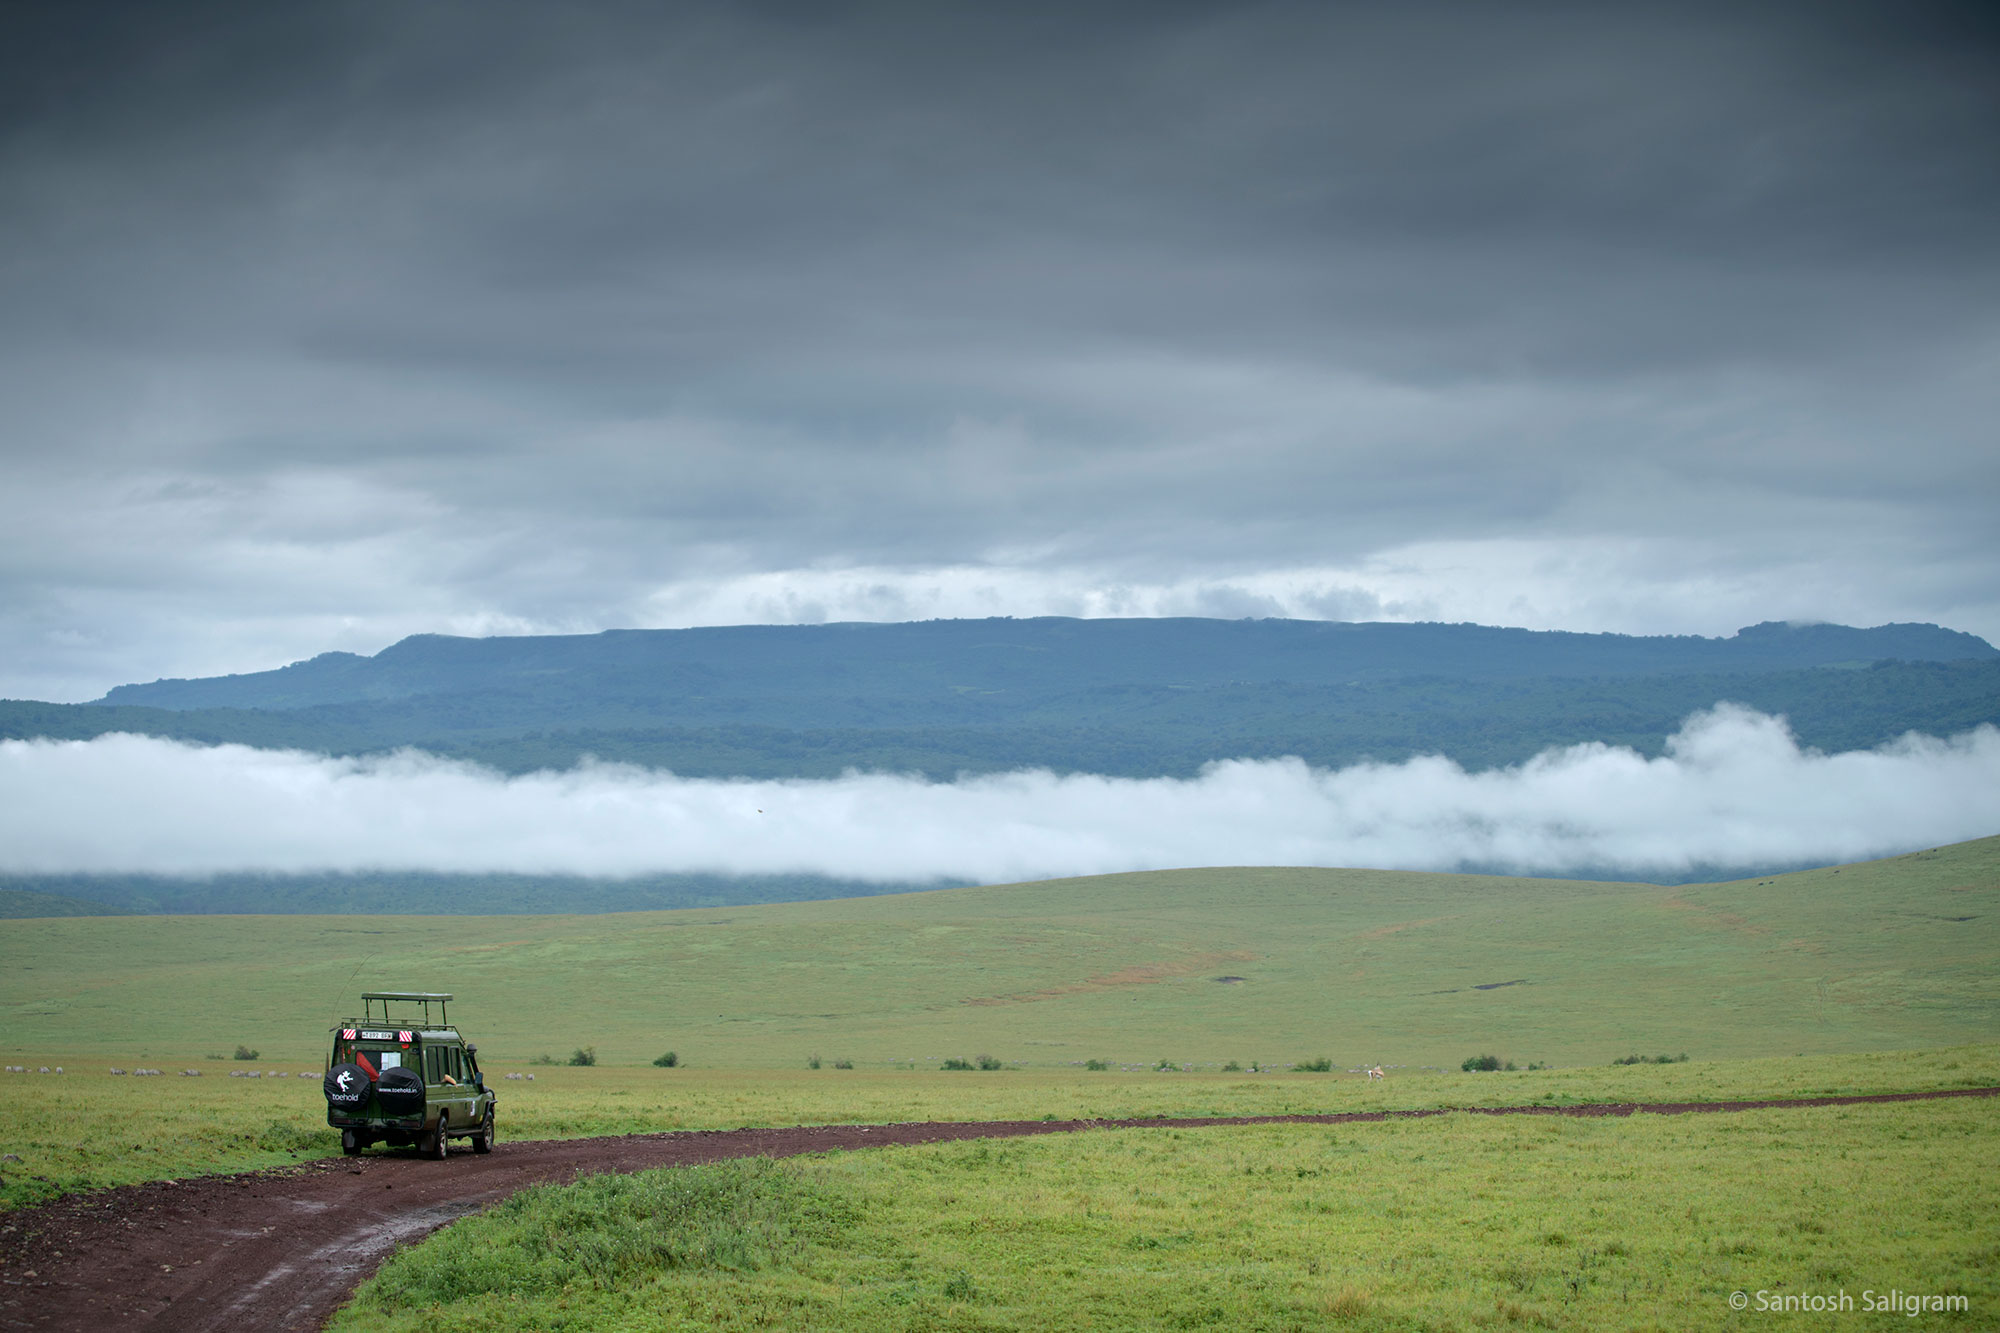 Toehold safari vehicle in Ngorongoro Crater, Tanzania, Santosh Saligram